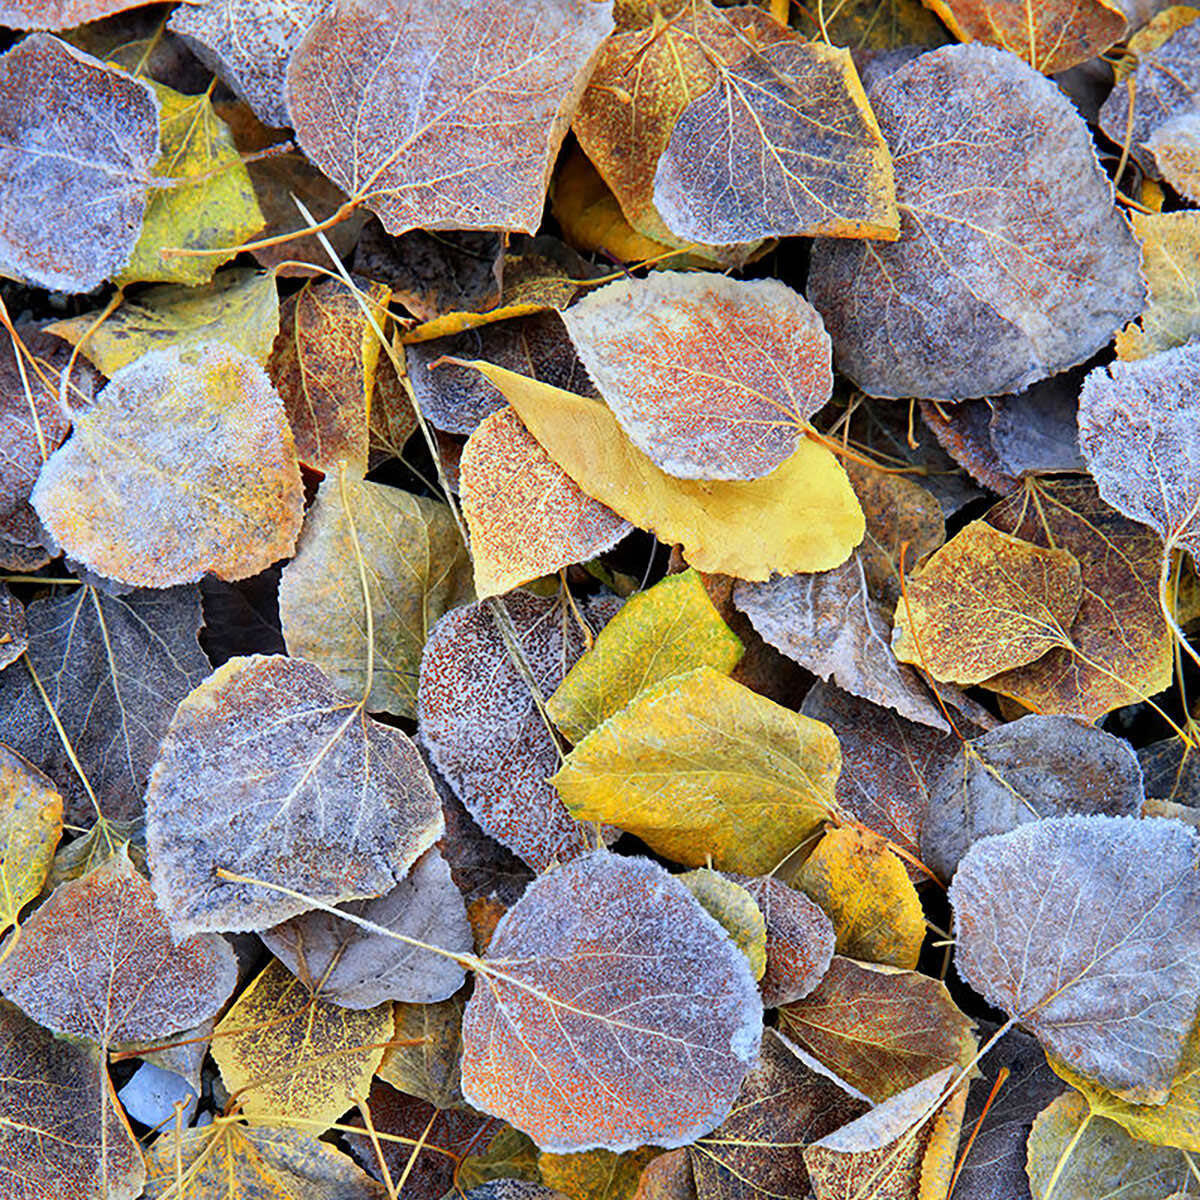 A photograph of fallen autumn leaves in Leavenworth, Washington titled Frosted Flakes.